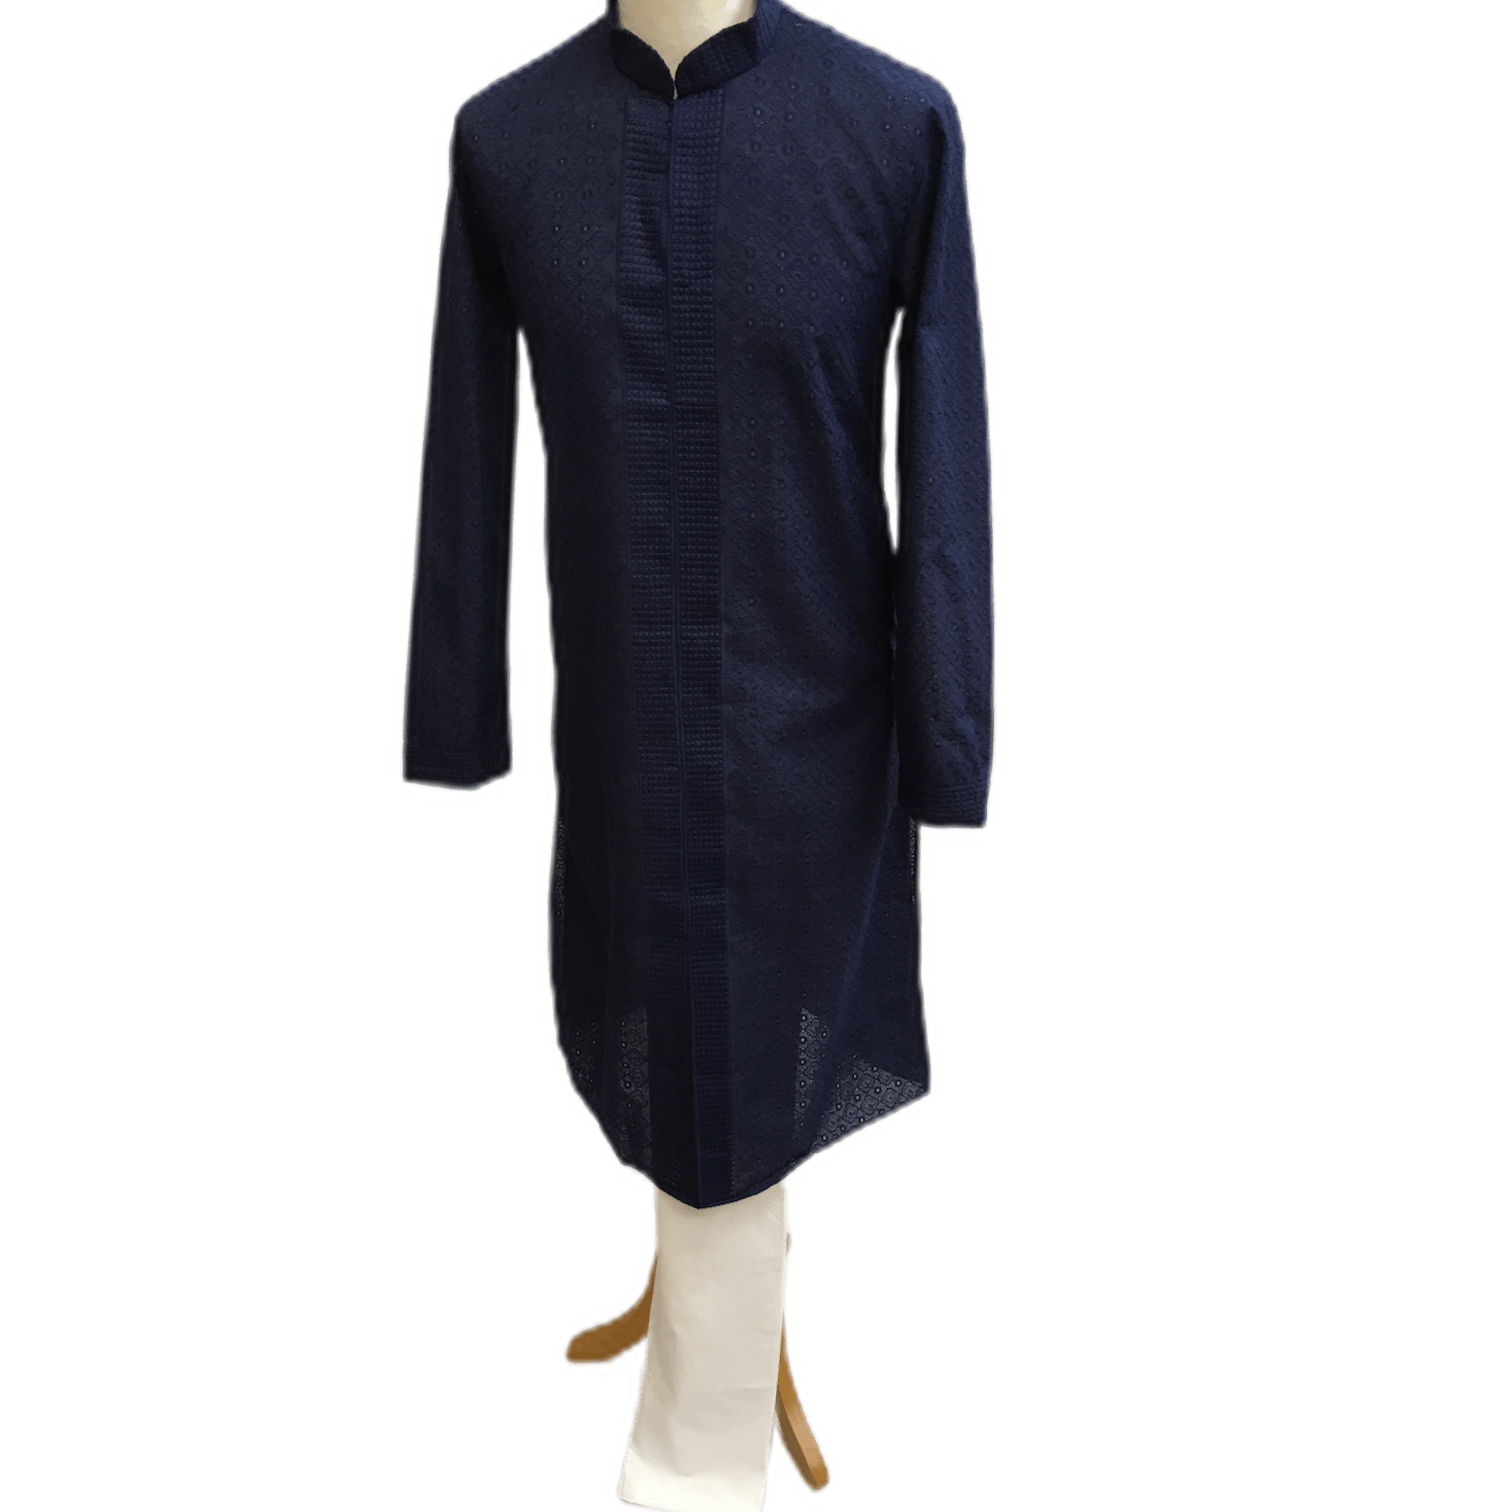 Mens Indian Kurta set in Navy blue, for weddings, Bollywood Party ( with Draw stringed trousers) - Farari KR1219